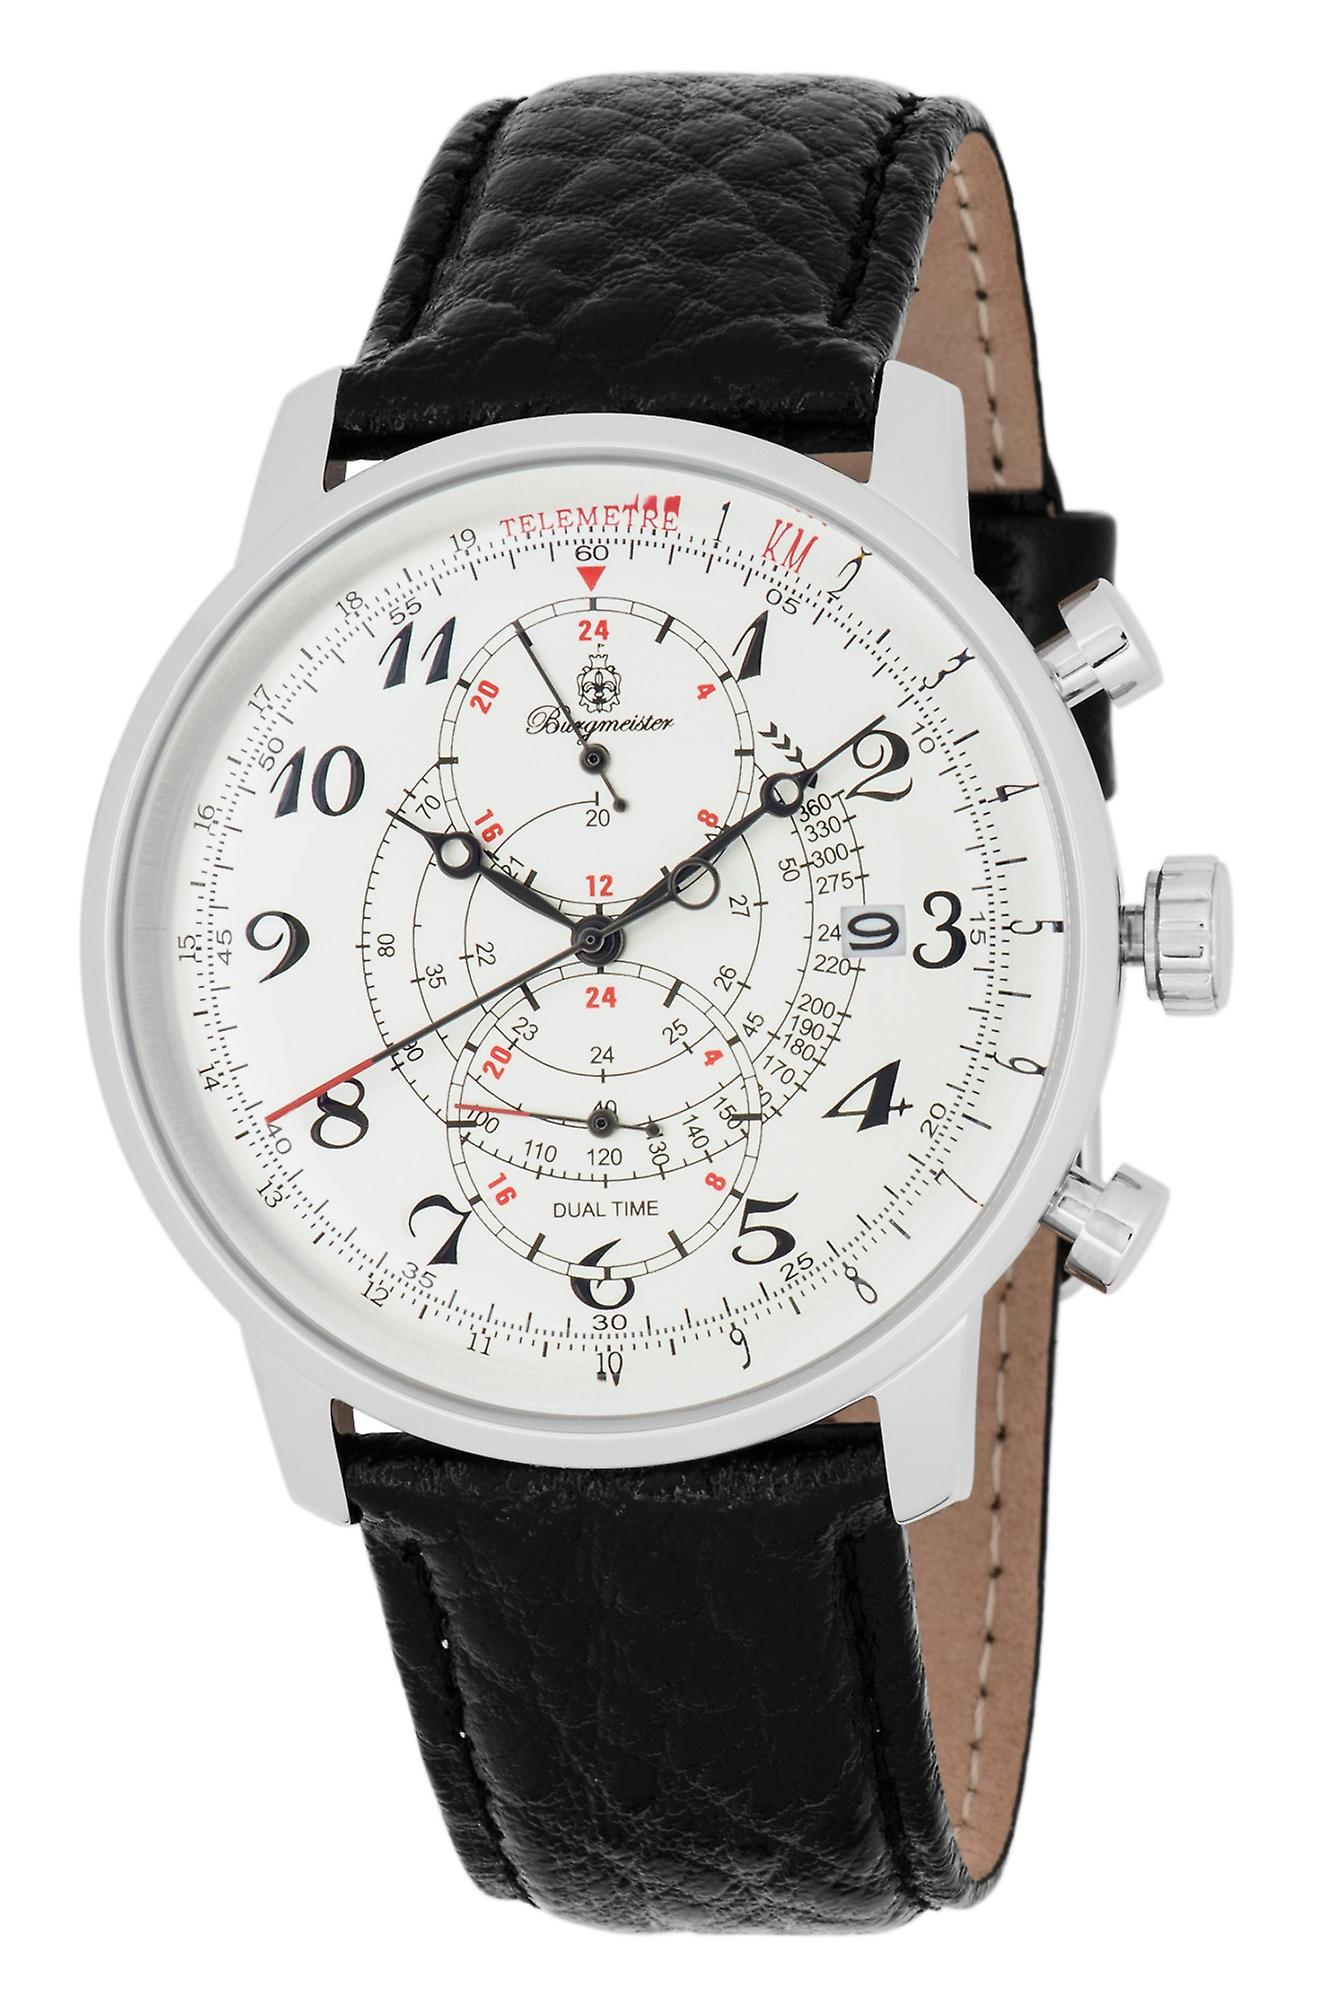 Burgmeister BM541-112 Temecula, Gents watch, Analogue display, Quartz with Citizen Movement - Water resistant, Stylish leather strap, Classic men's watch